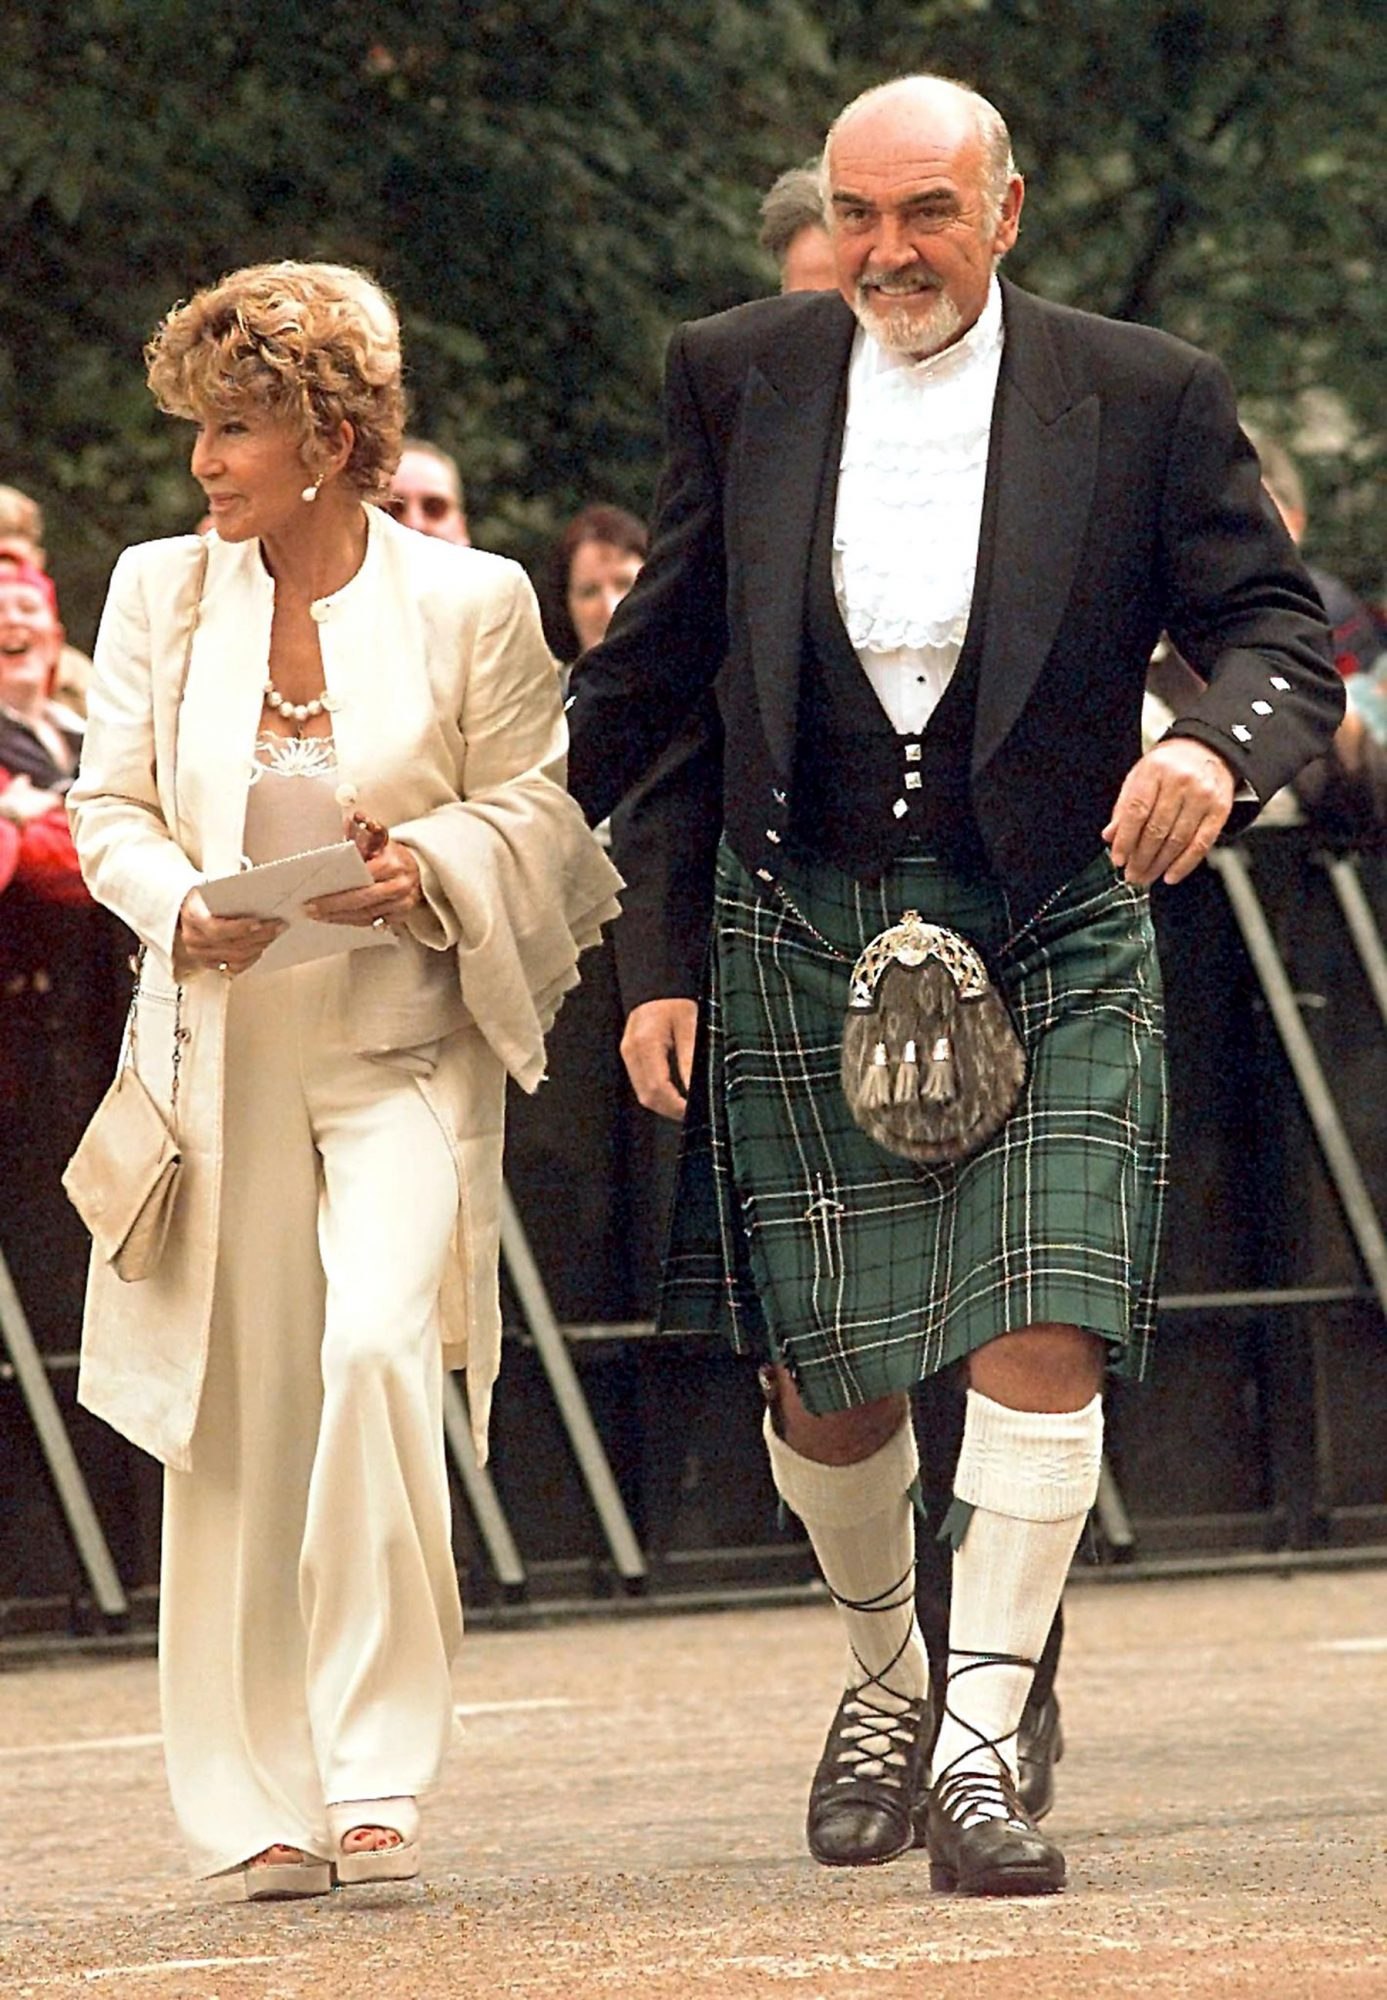 Scottish actor Sean Connery with wife Mi